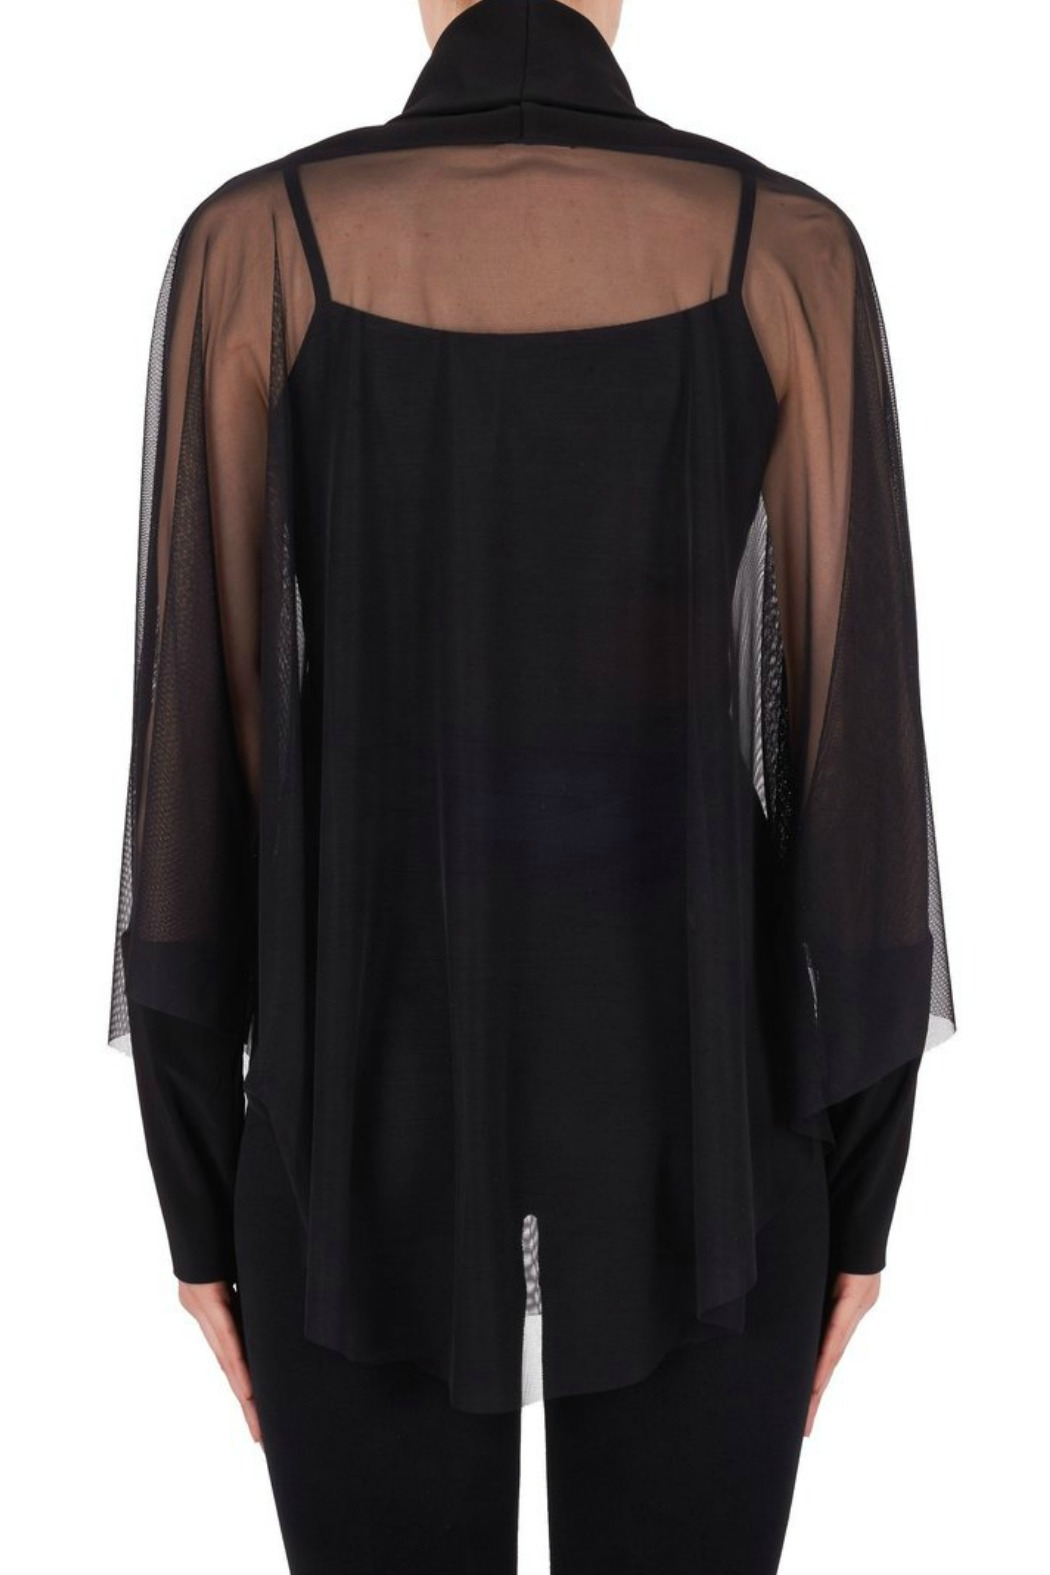 Joseph Ribkoff USA Inc. Black Mesh Overlay Top - Side Cropped Image